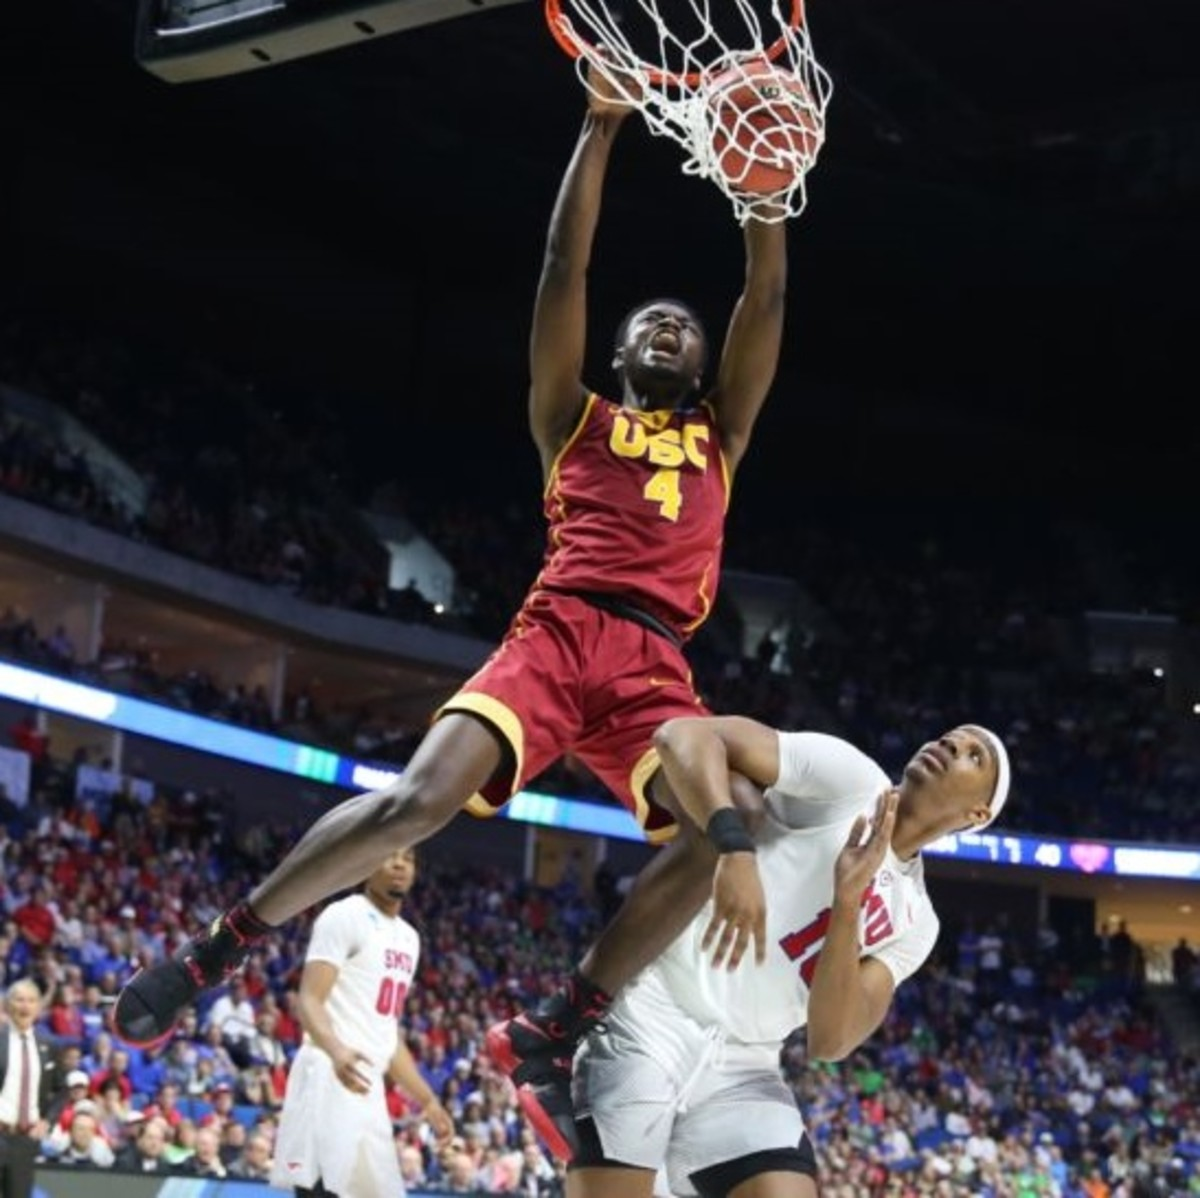 Chimezie Metu and Bennie Boatwright are longer, more mobile versions of the original Dunk City frontcourt of Chase Fieler, Eric McKnight, and Eddie Murray.